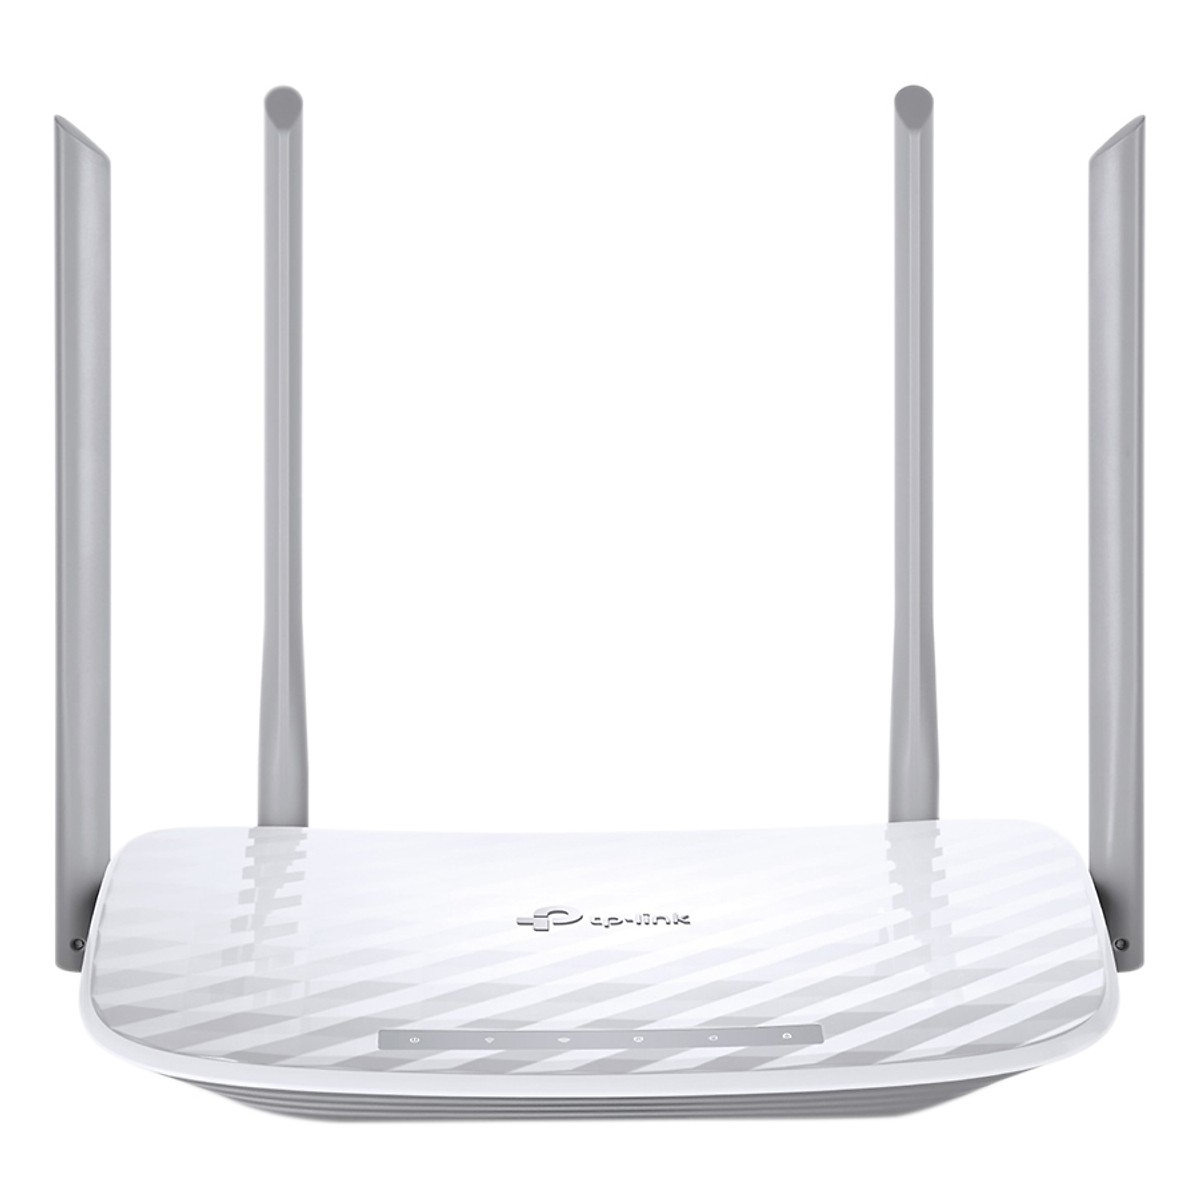 router wifi ac1200 tp link archer c50 bang tan kep